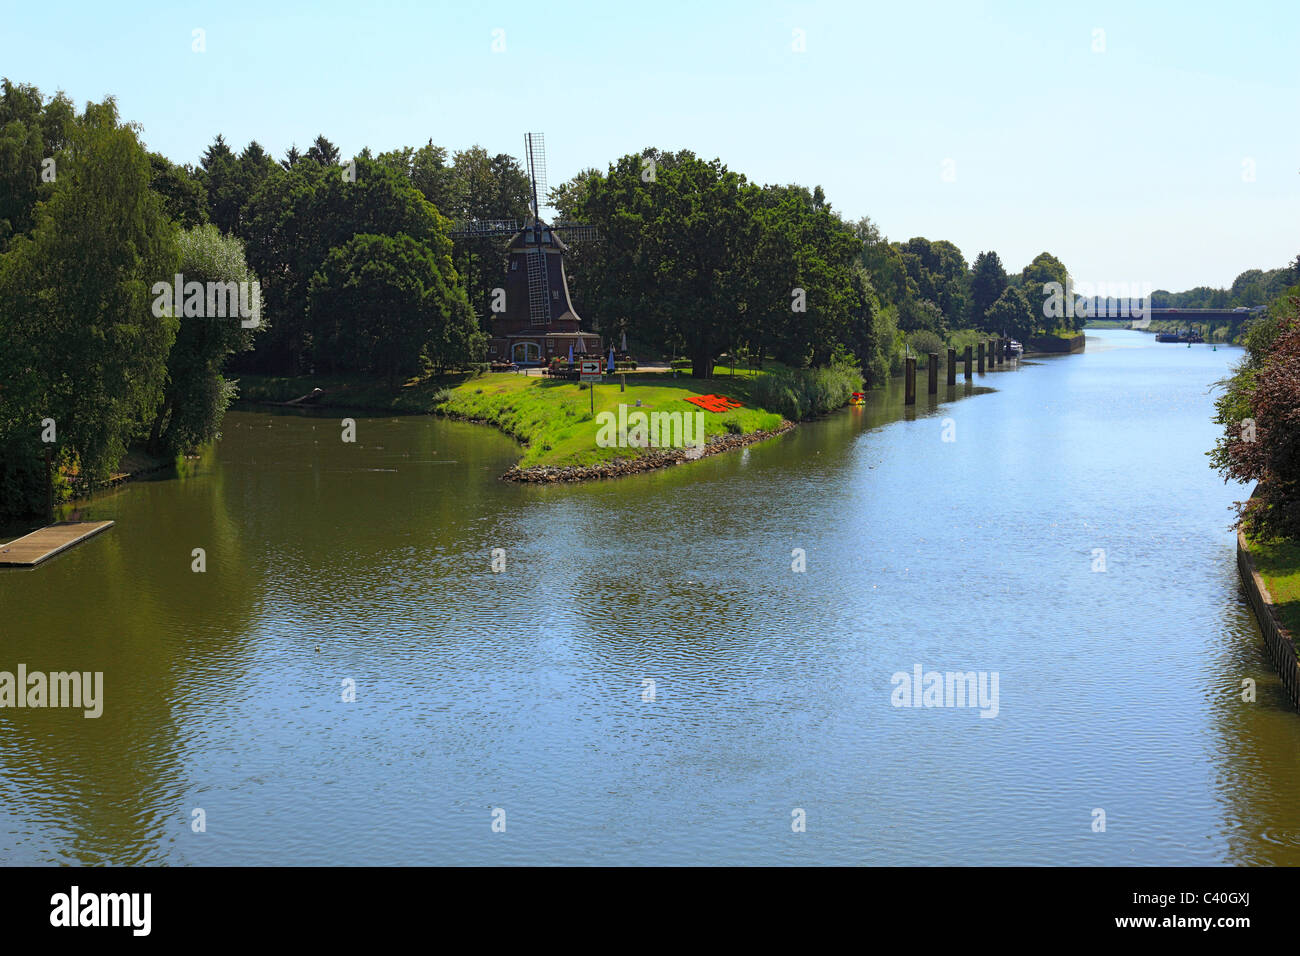 Holtingmuhle, mill, hare's mouth, Dortmund Ems canal, Meppen, Emsland, Lower Saxony, Germany, Europe, river, - Stock Image